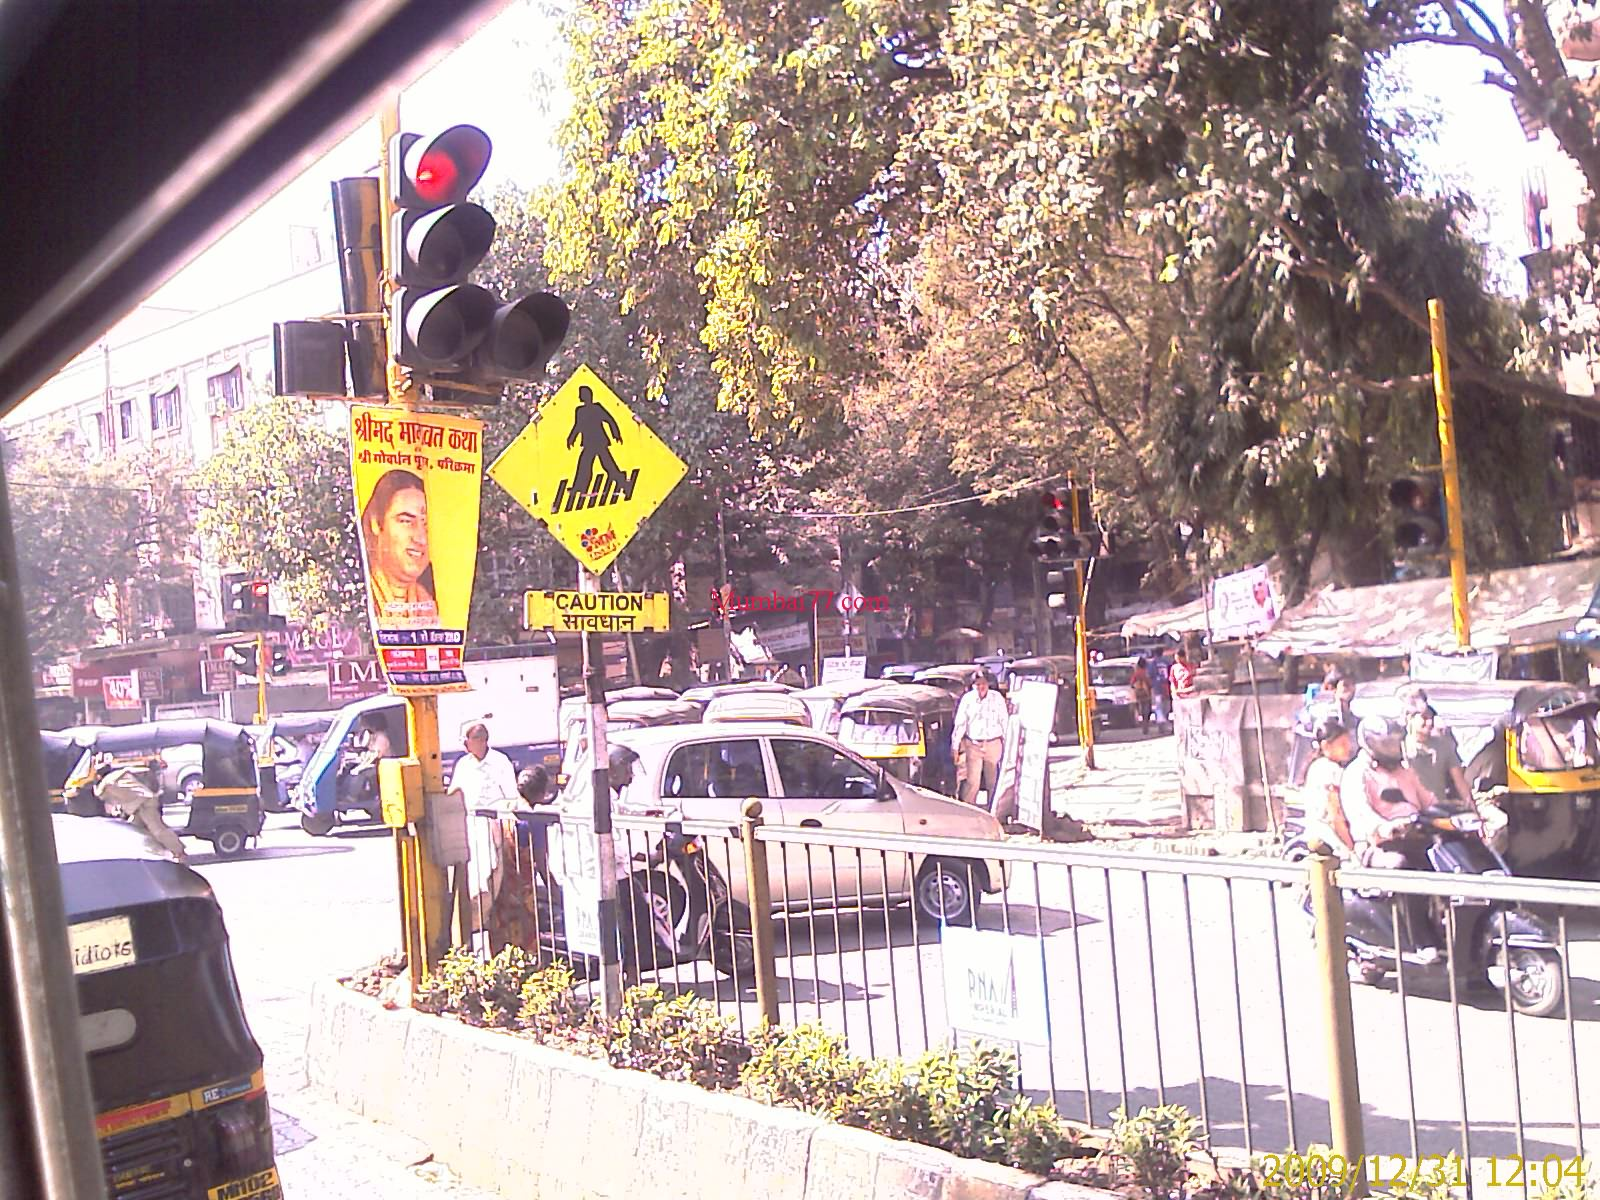 Traffic Signal Mumbai